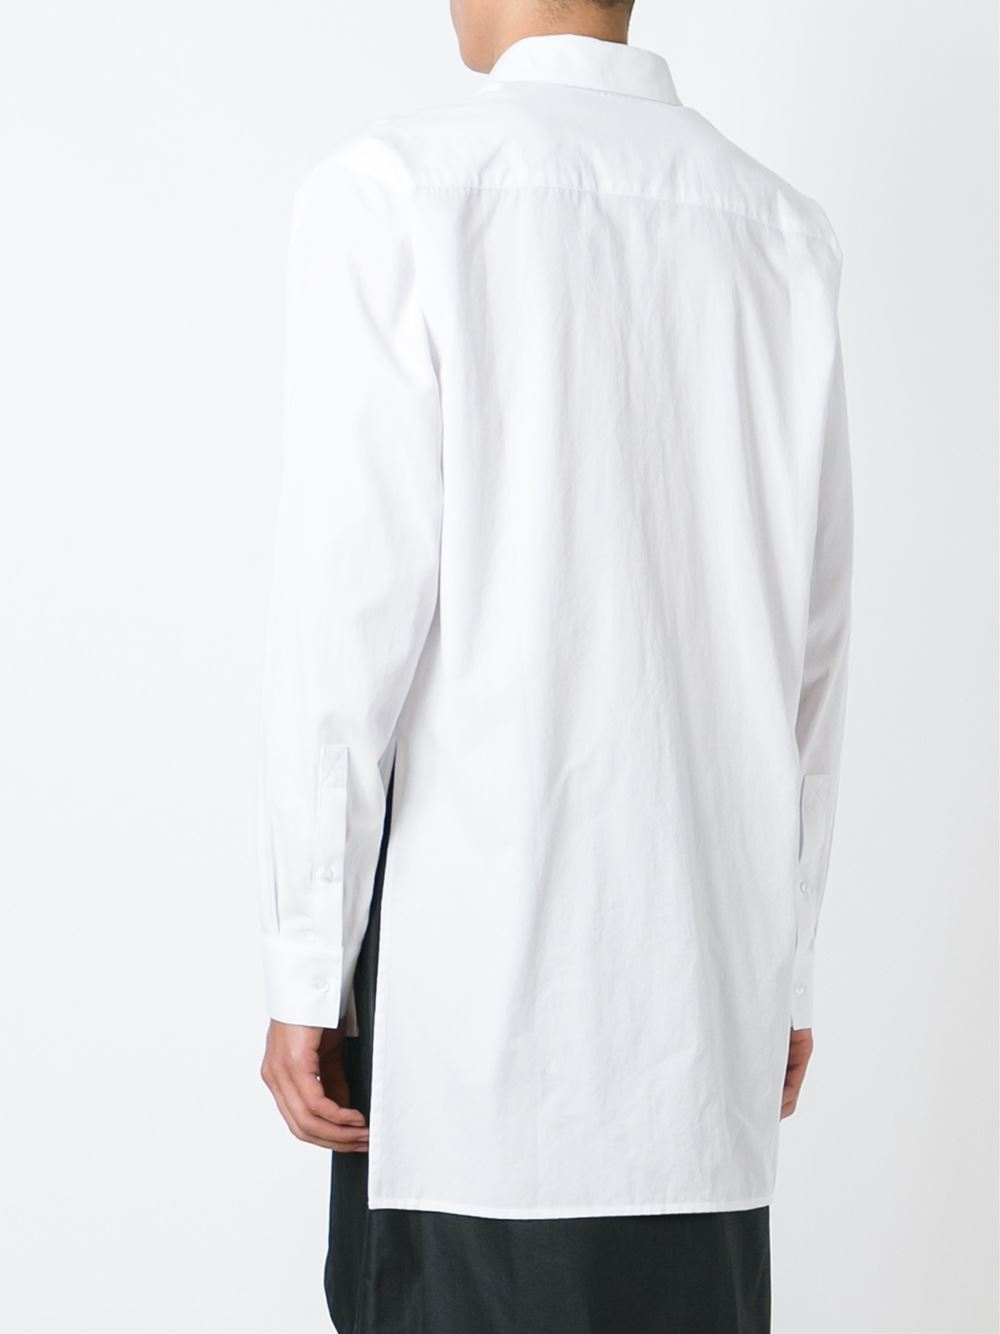 Embroidered Shirts Men